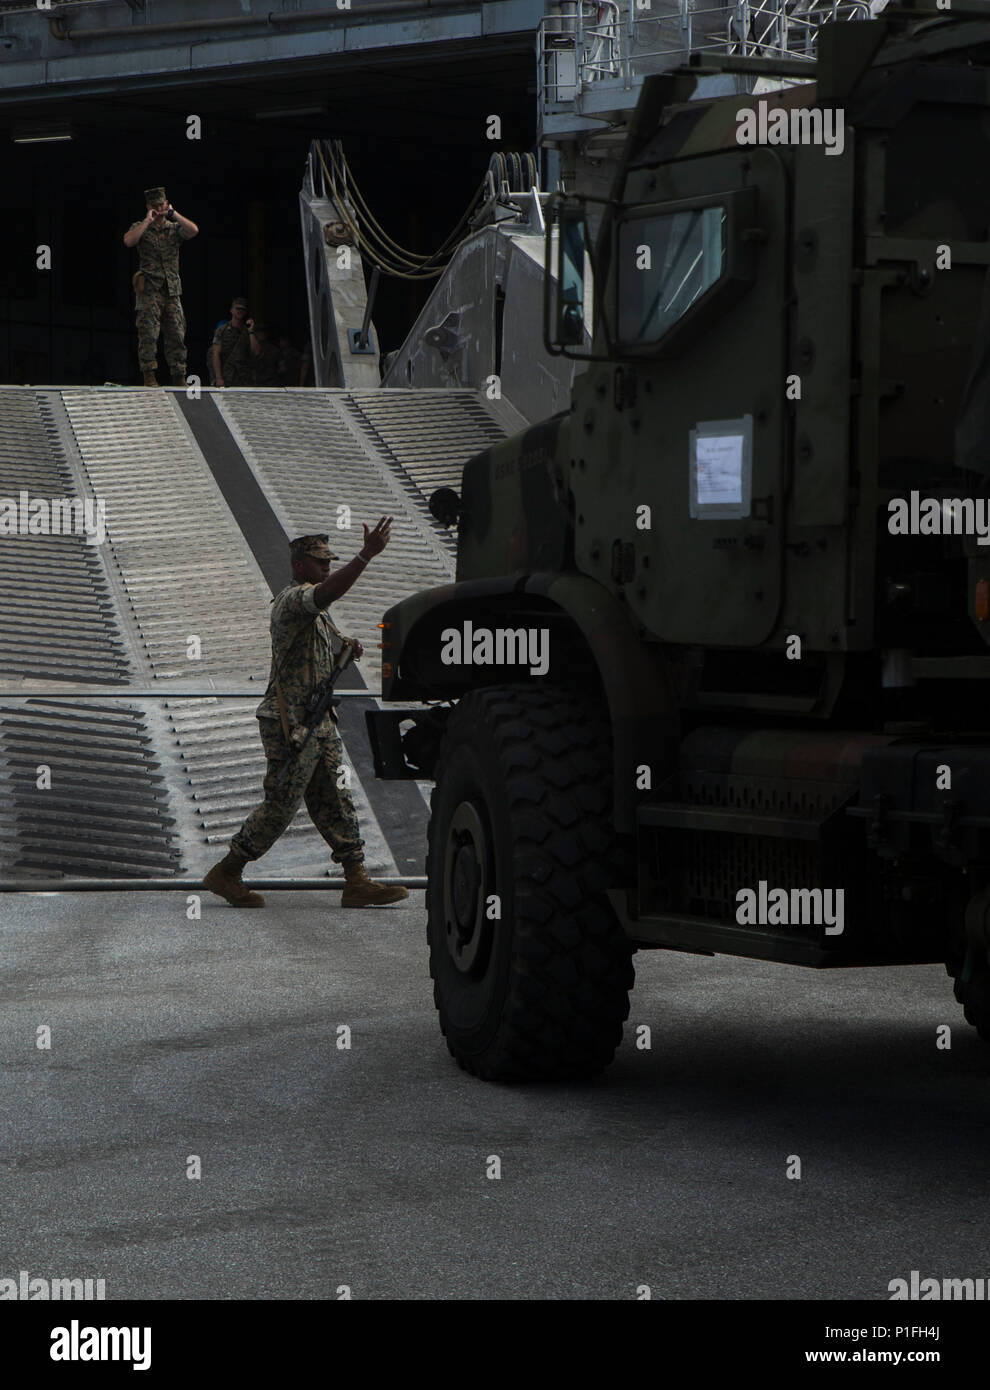 Sgt. Jeremaine Craighead, from Alexandria, Virginia, guides a 7-ton truck on to the USNS Fall River (T-EPF-4)  at Naha Port, Okinawa, Japan, during Blue Chromite 2017, October 28, 2016. Blue Chromite is a U.S. –only exercise which strengthens the Navy-Marine Corps expeditionary, amphibious rapid-response capabilities based in Okinawa and greater Indo-Asia-Pacific region. Craighead is a motor transportation operator with Truck Company, 3rd Marine Division, Headquarters Battalion, III Marine Expeditionary Force. (U.S. Marine Corps photo by Lance Cpl. Kelsey Dornfeld/ Released) - Stock Image